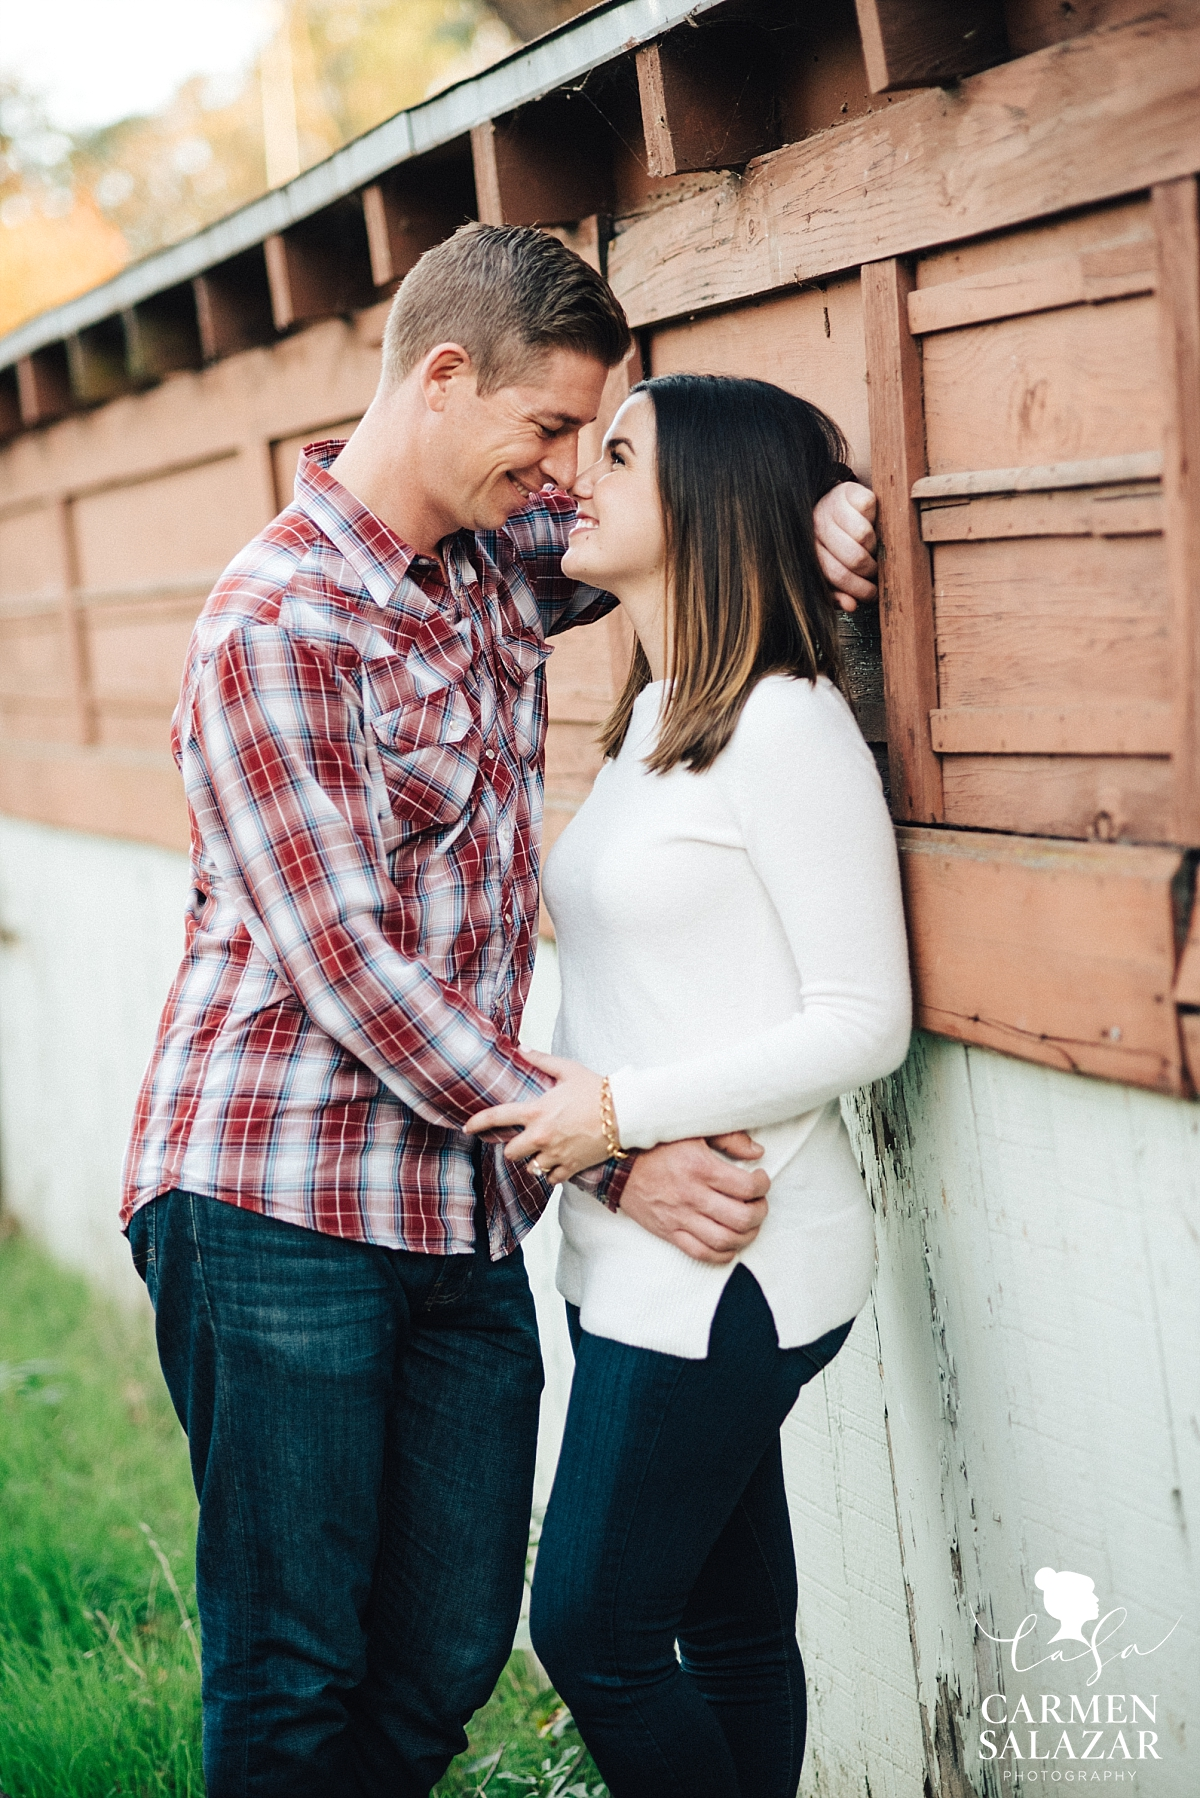 Romantic fall neighborhood engagement session - Carmen Salazar